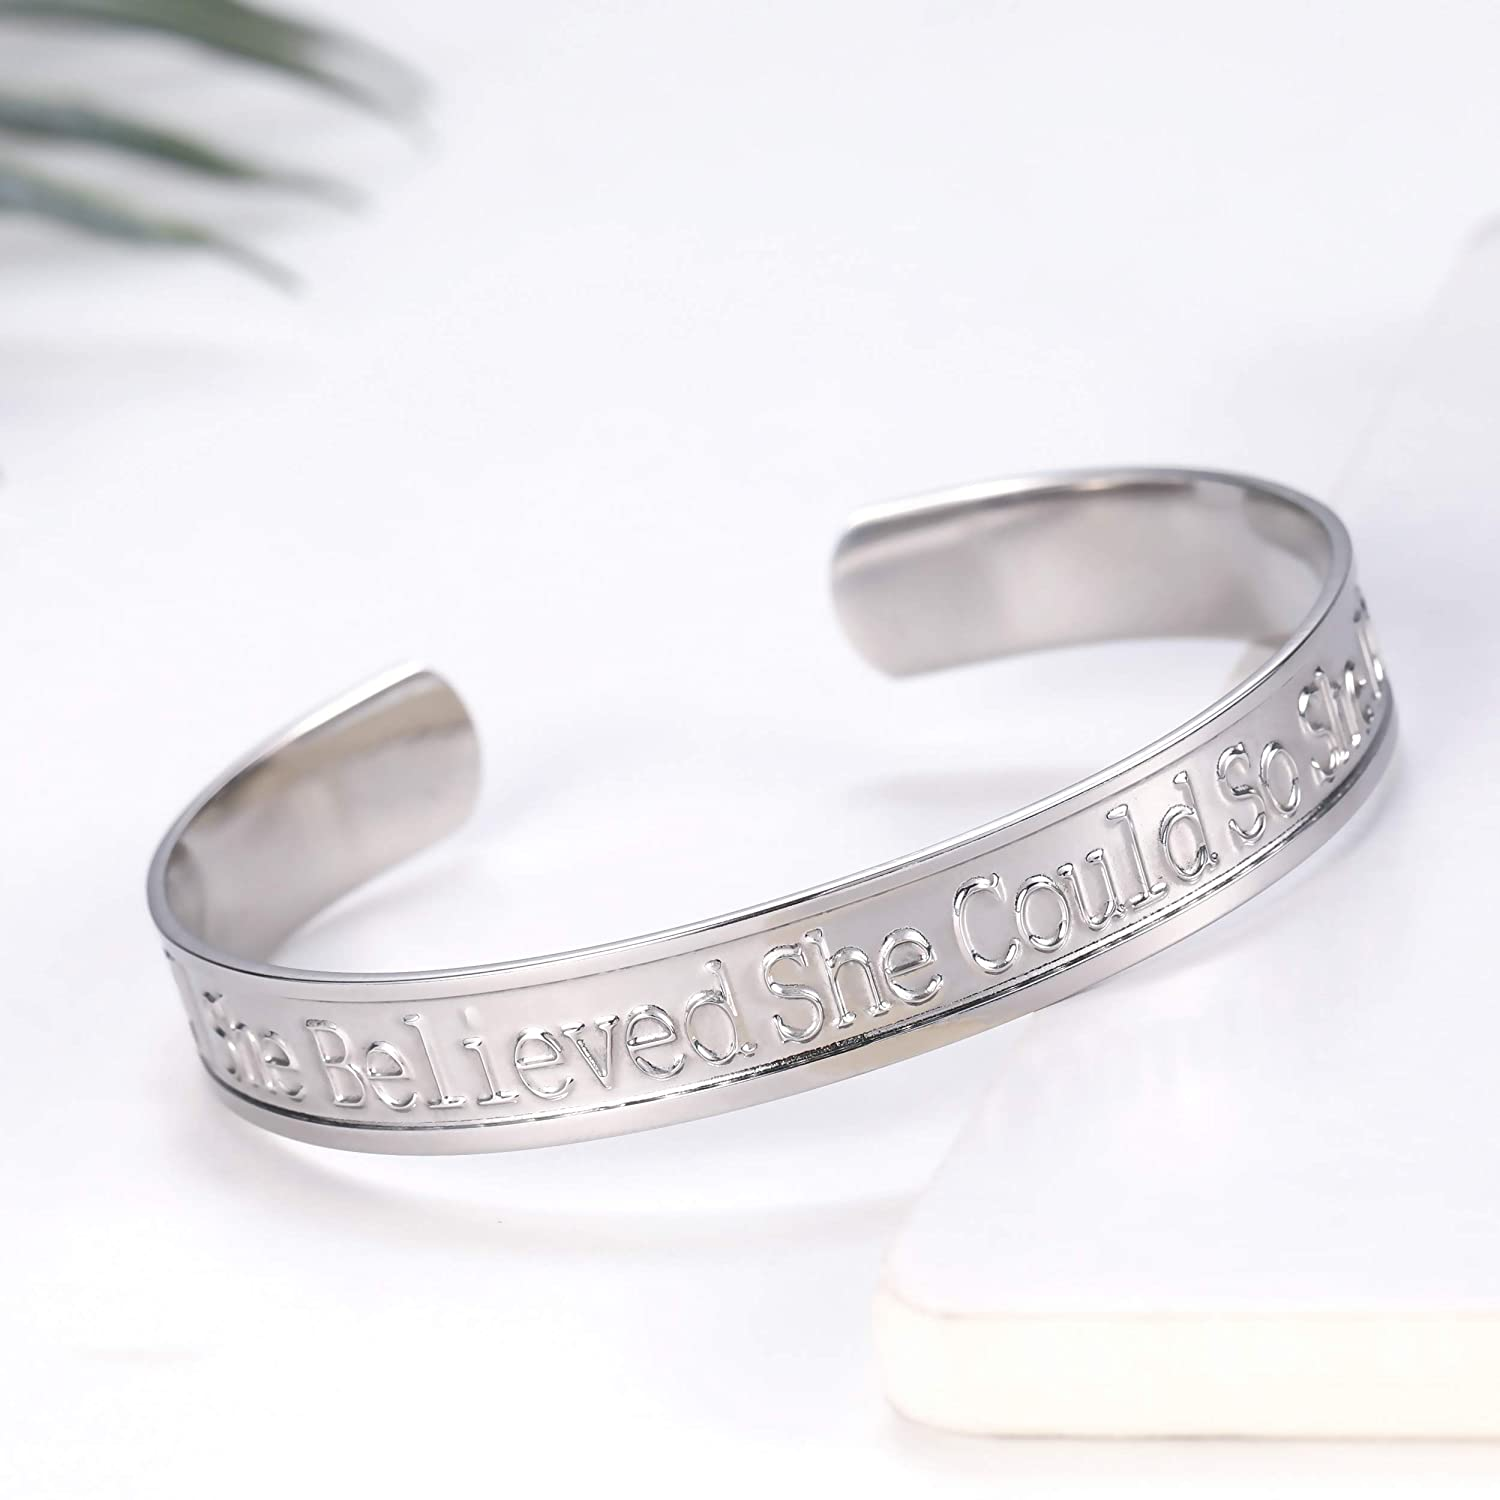 EUEAVAN Stainless Steel She Believed She Could So She Did Bold Reminder Pattern Bangle Silver Color Bracelet for Women Girls Teens